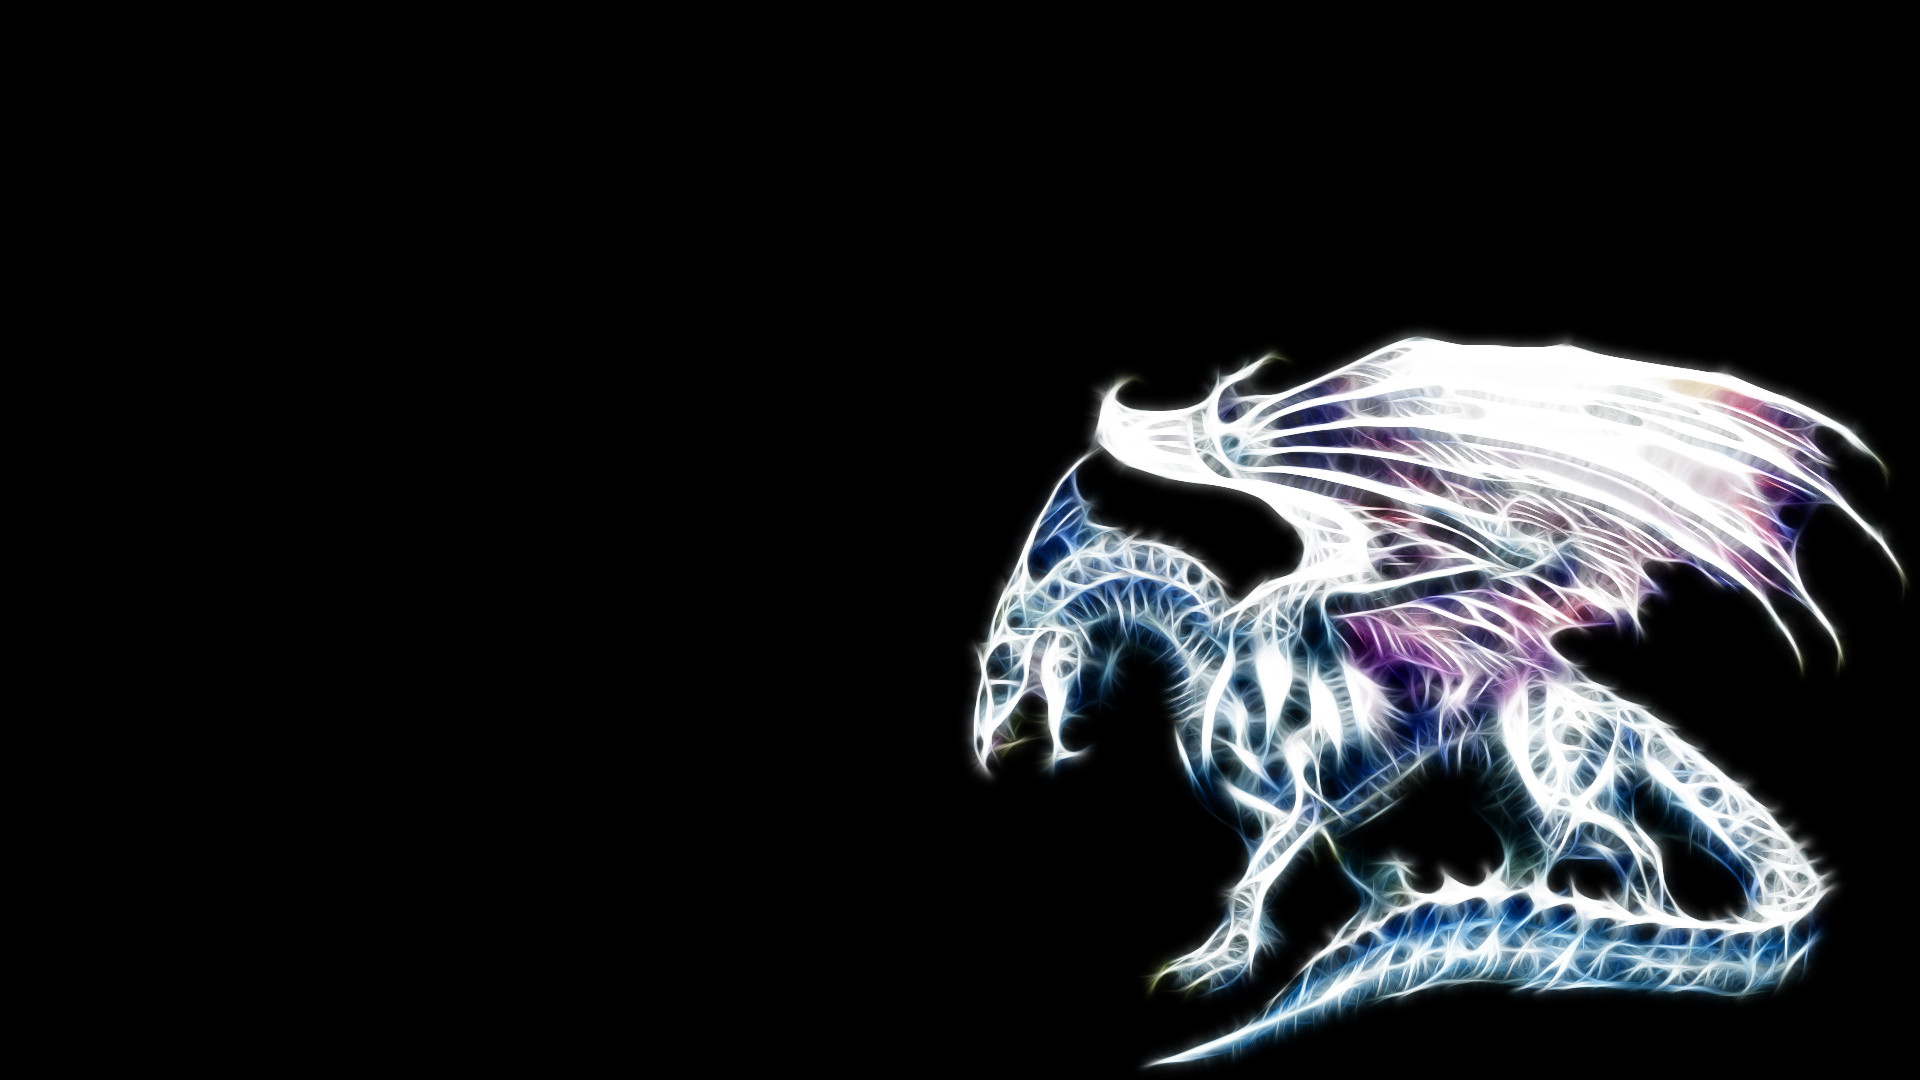 Res: 1920x1080, Dragon Background